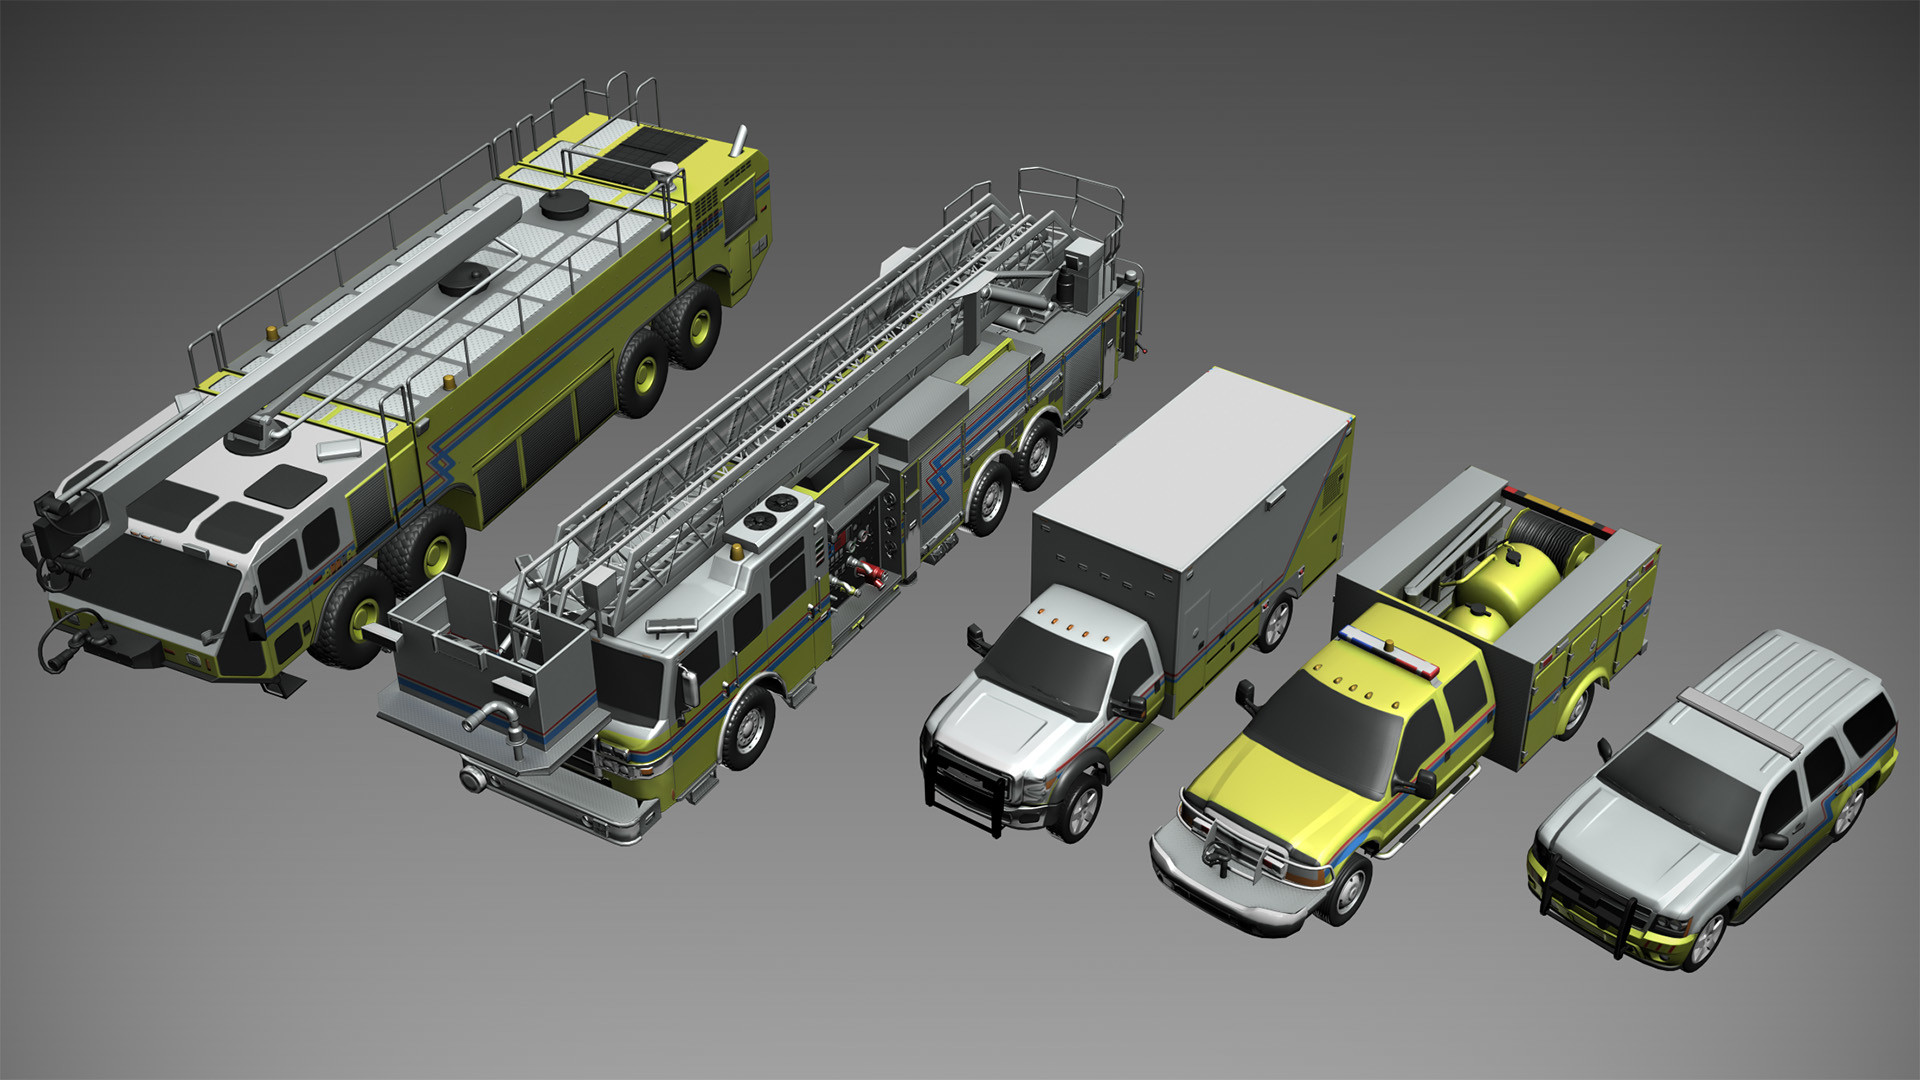 Several vehicles to use in strategy planing. These are low-poly with normal maps.